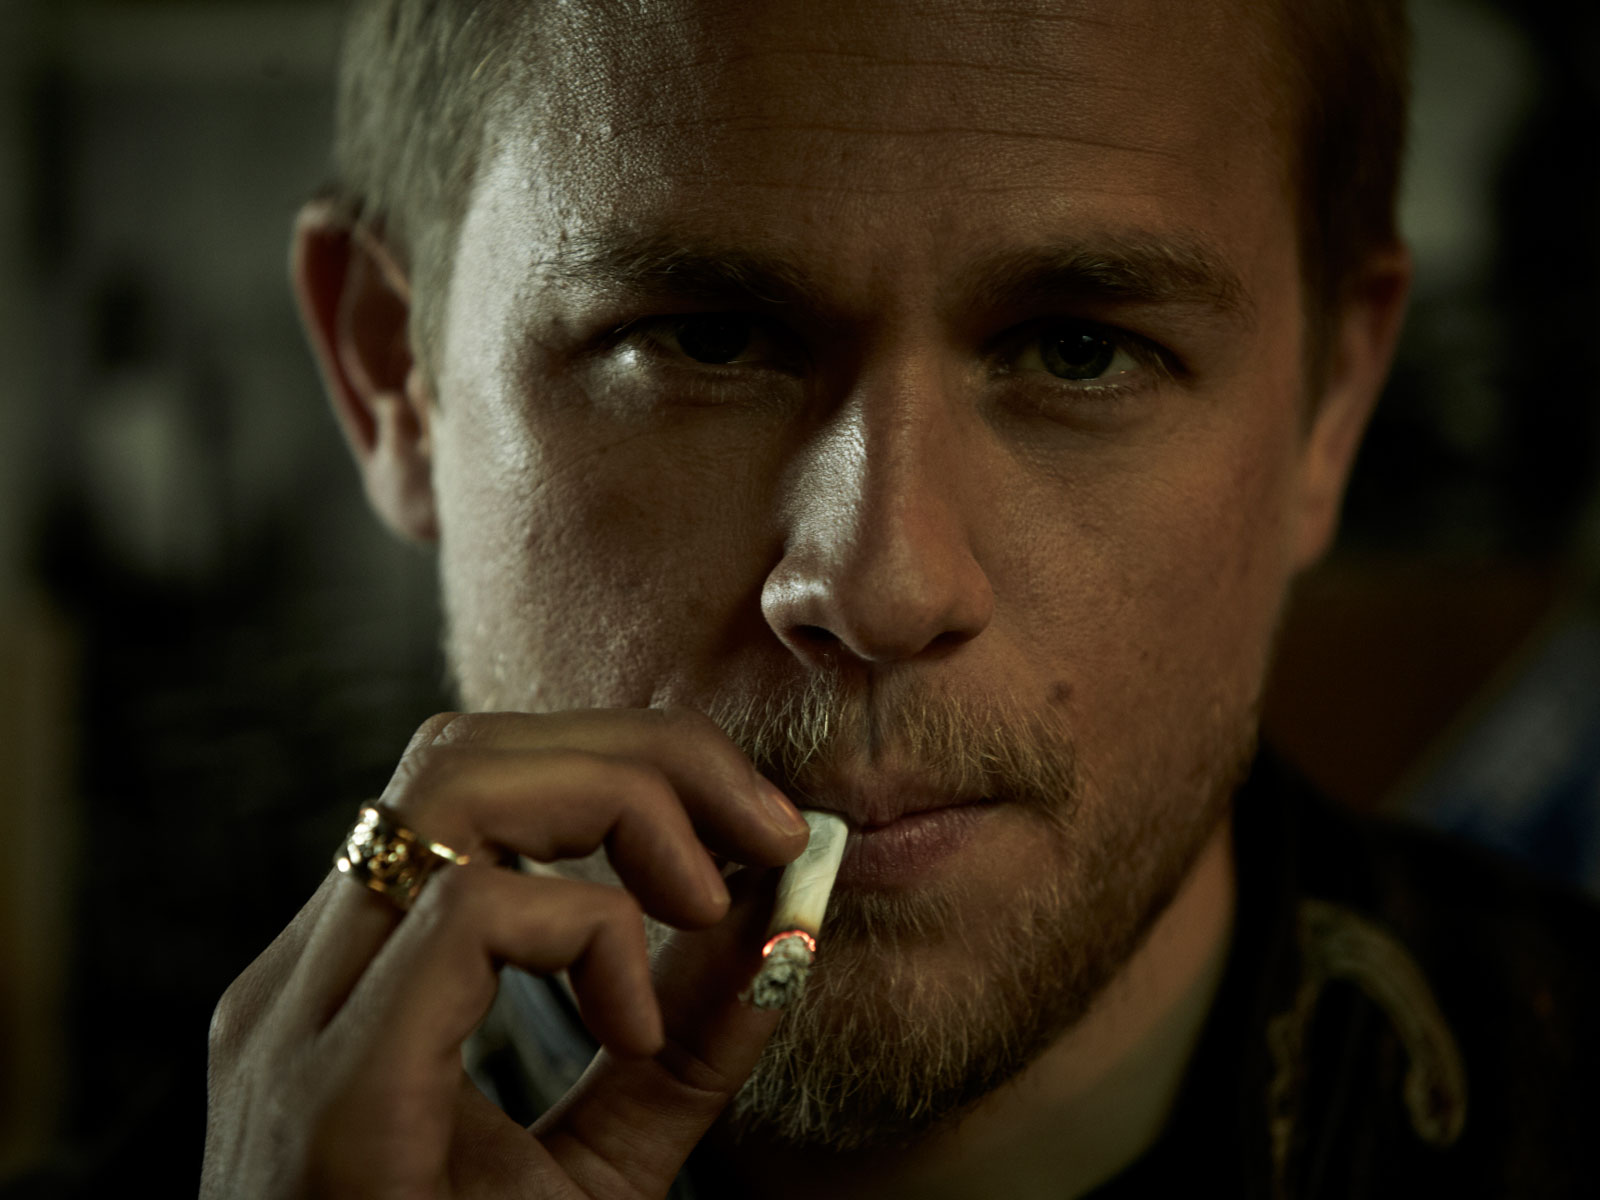 Charlie Hunnam Wallpapers High Resolution and Quality Download 1600x1200